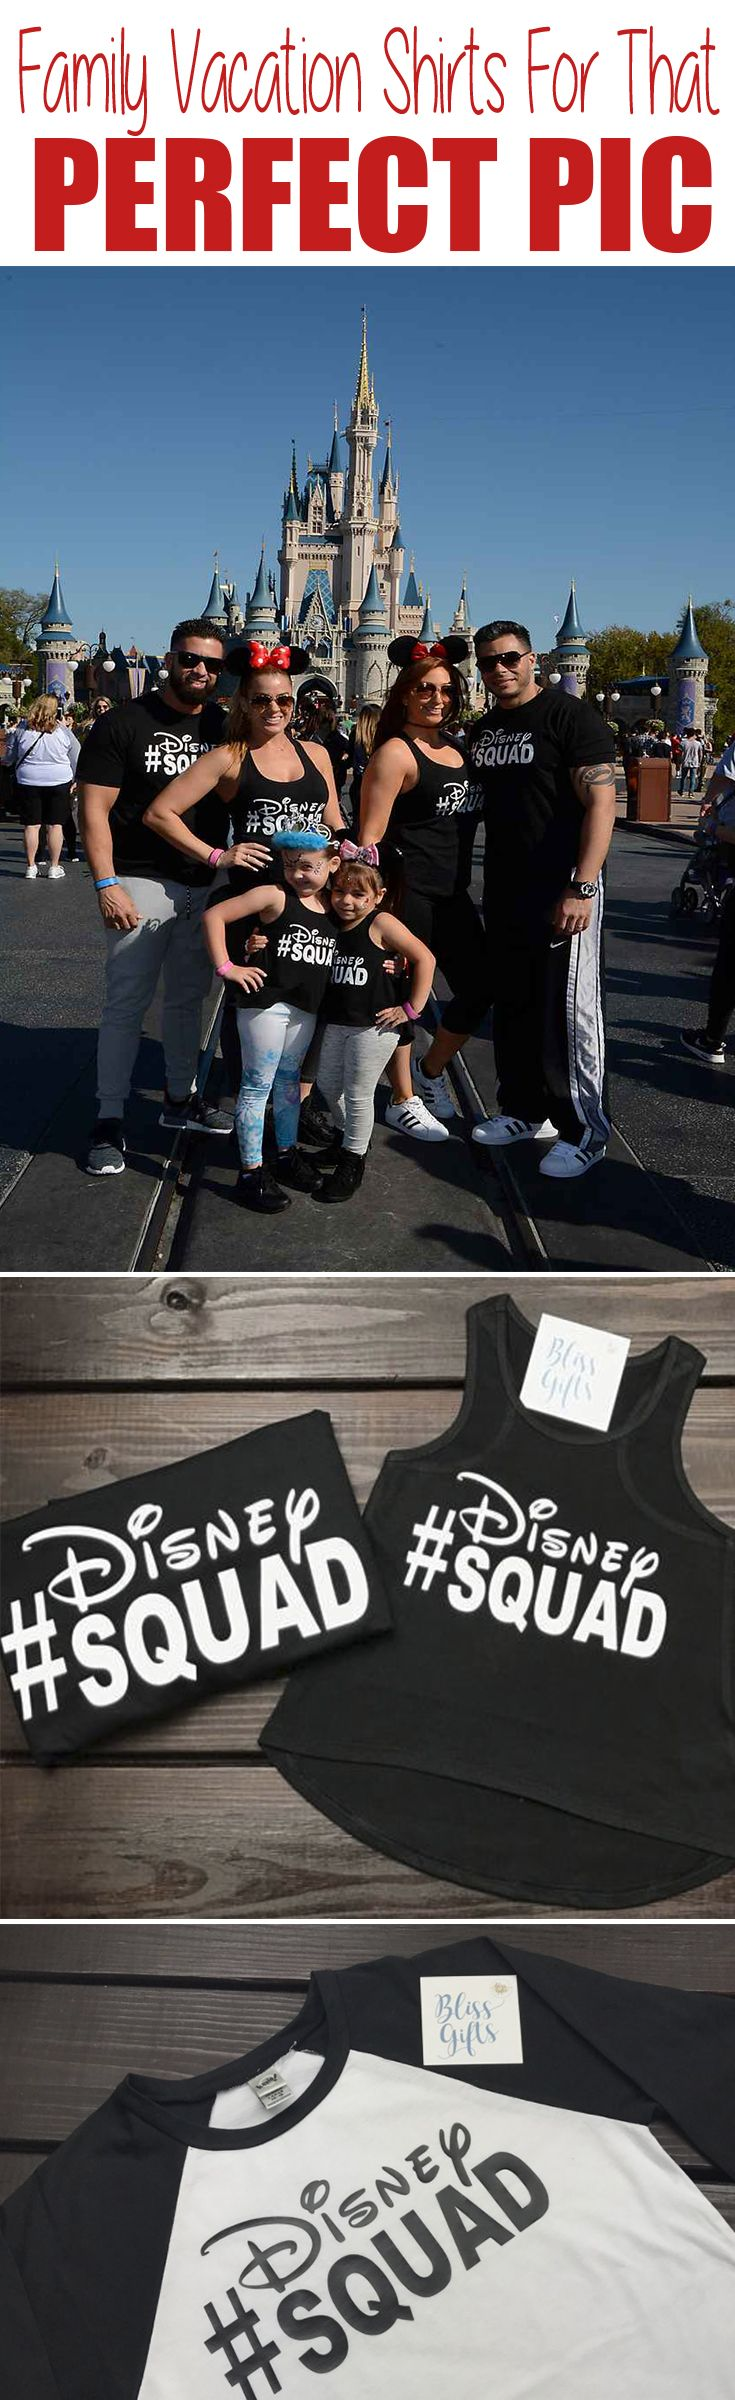 We could get these and wear them when we go to Epcot they evening! The 6 of us could match!!